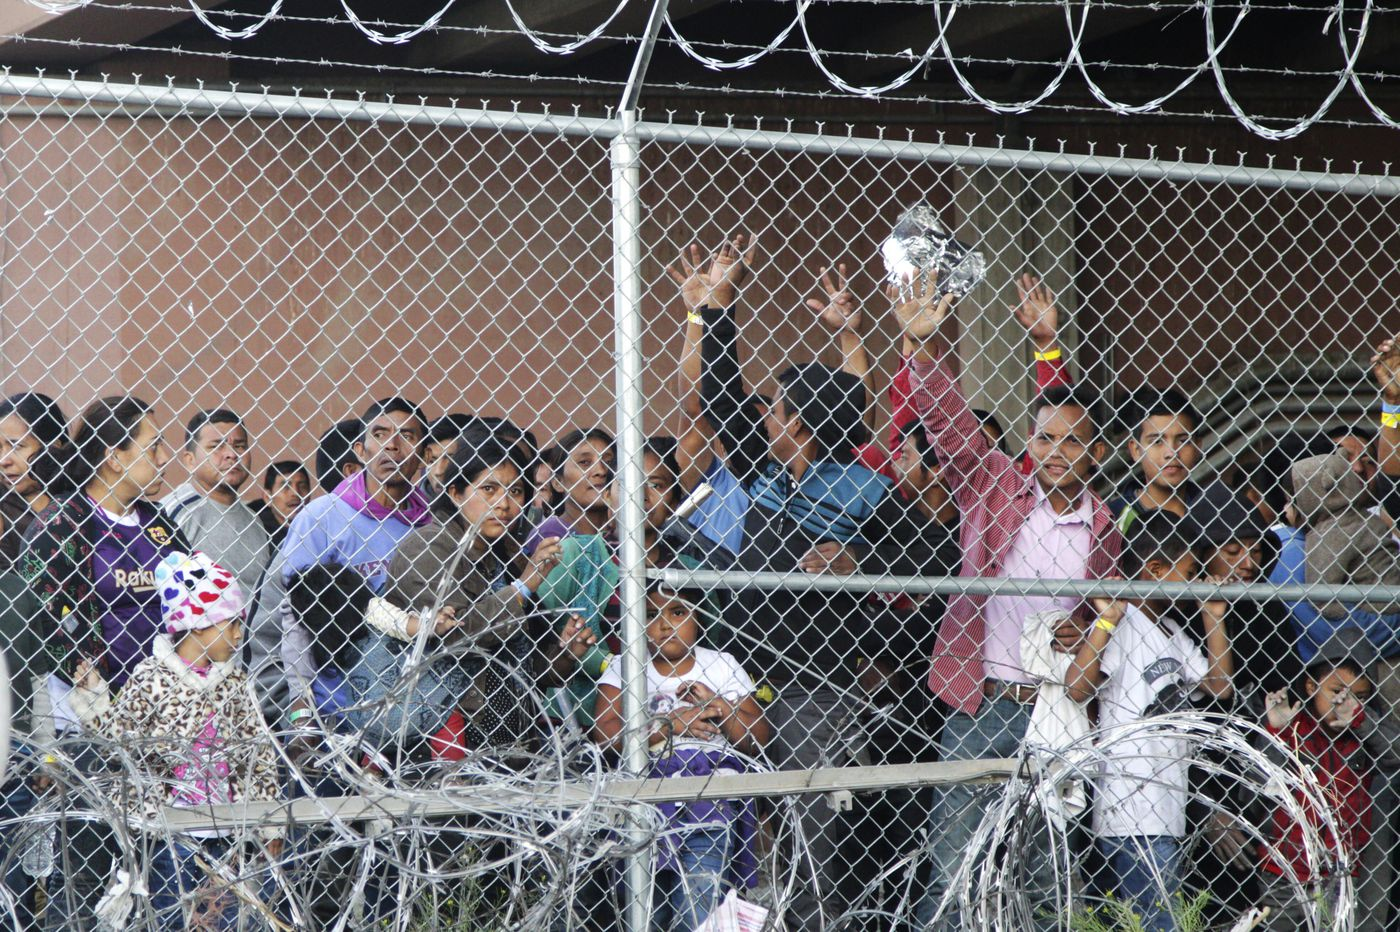 Emboldened Trump hopes a cruel border crisis will get him reelected in 2020 | Will Bunch